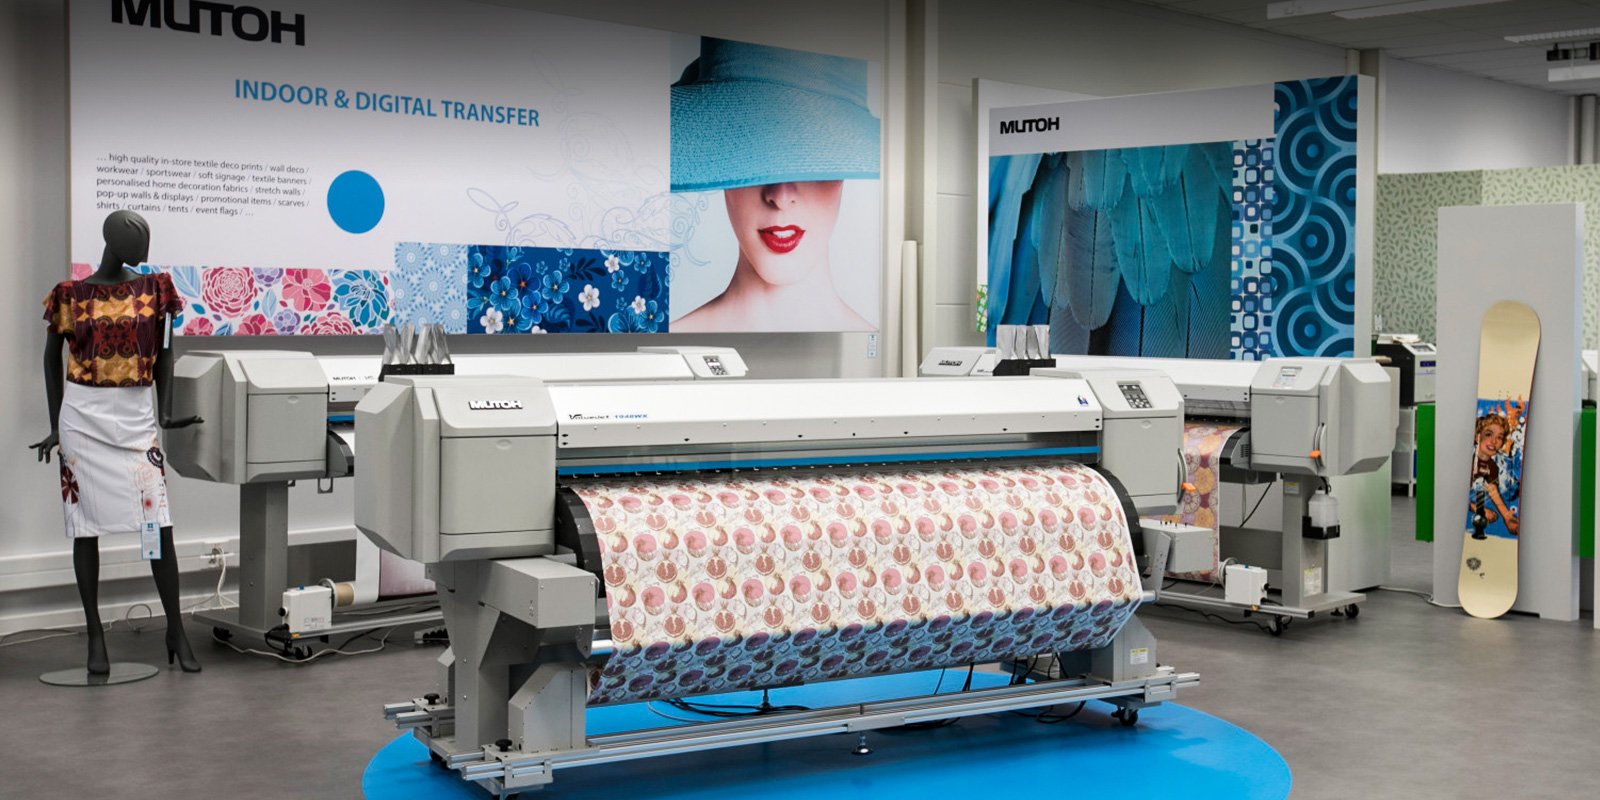 Digital – Mutoh Indoor